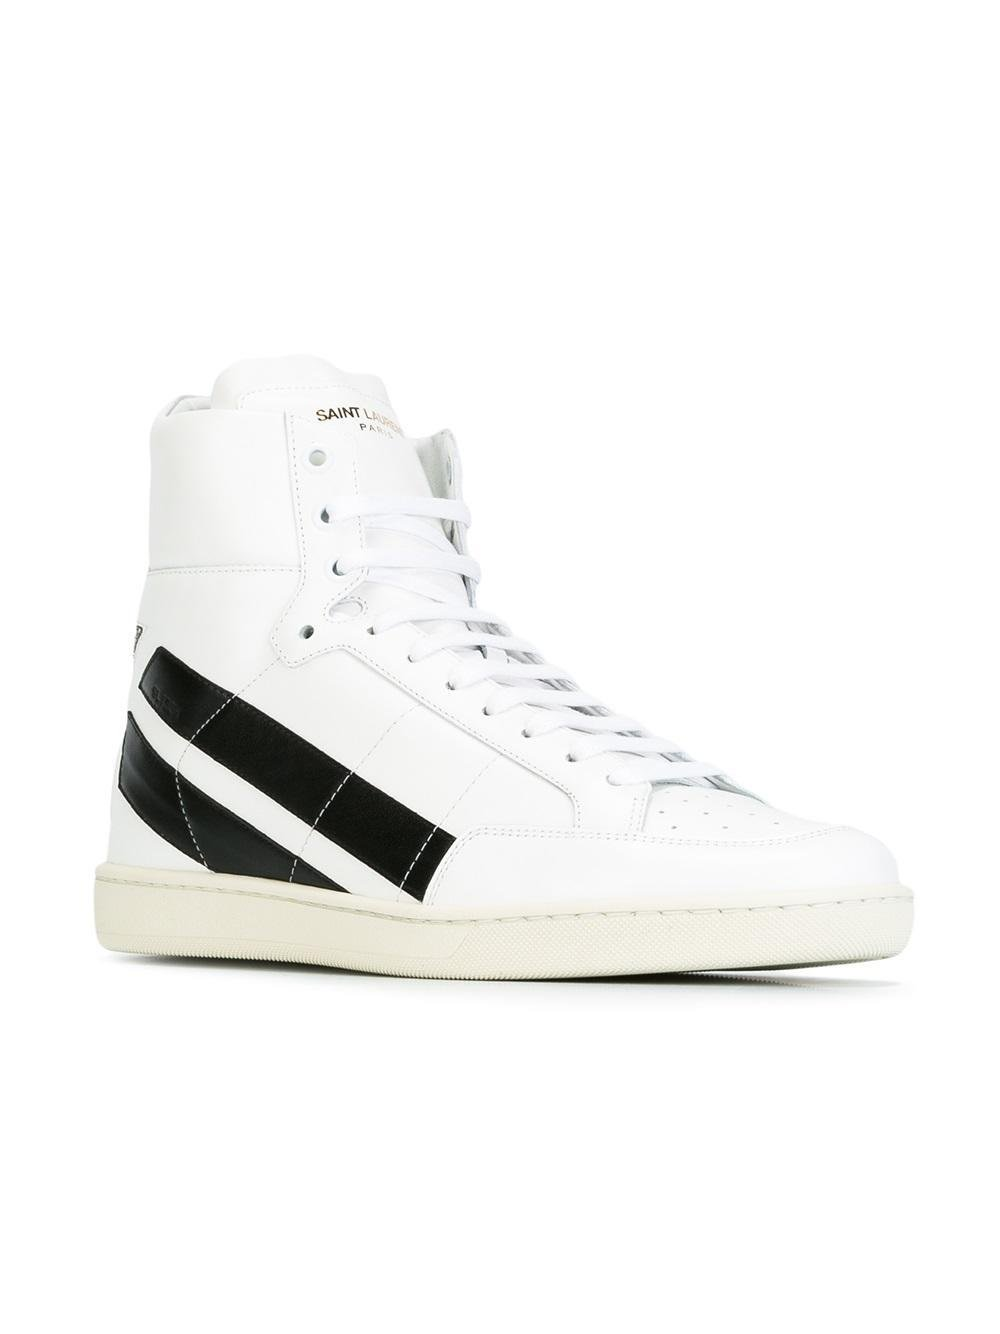 4ee88c4712a4 Gallery. Previously sold at  Farfetch · Men s Saint Laurent Court Classic  ...